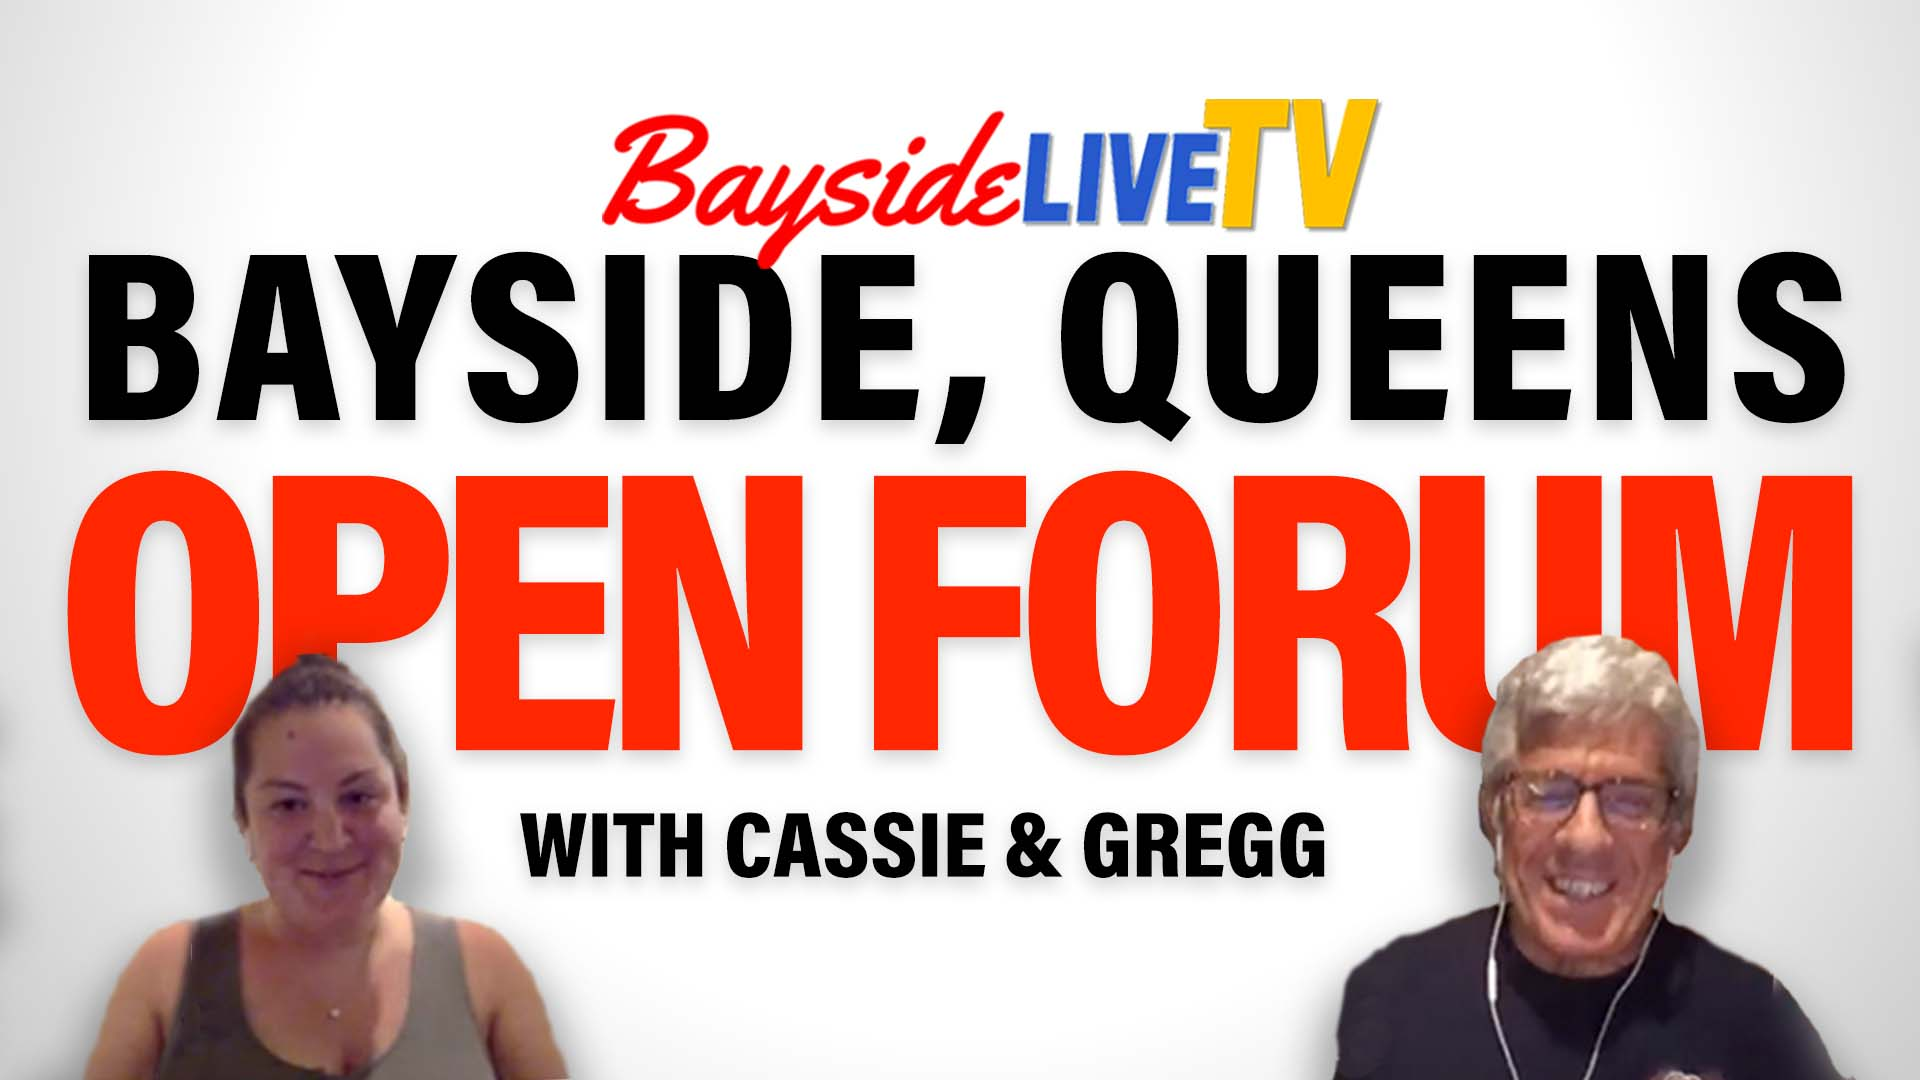 Bayside, Queens Open Forum – June 6, 2020